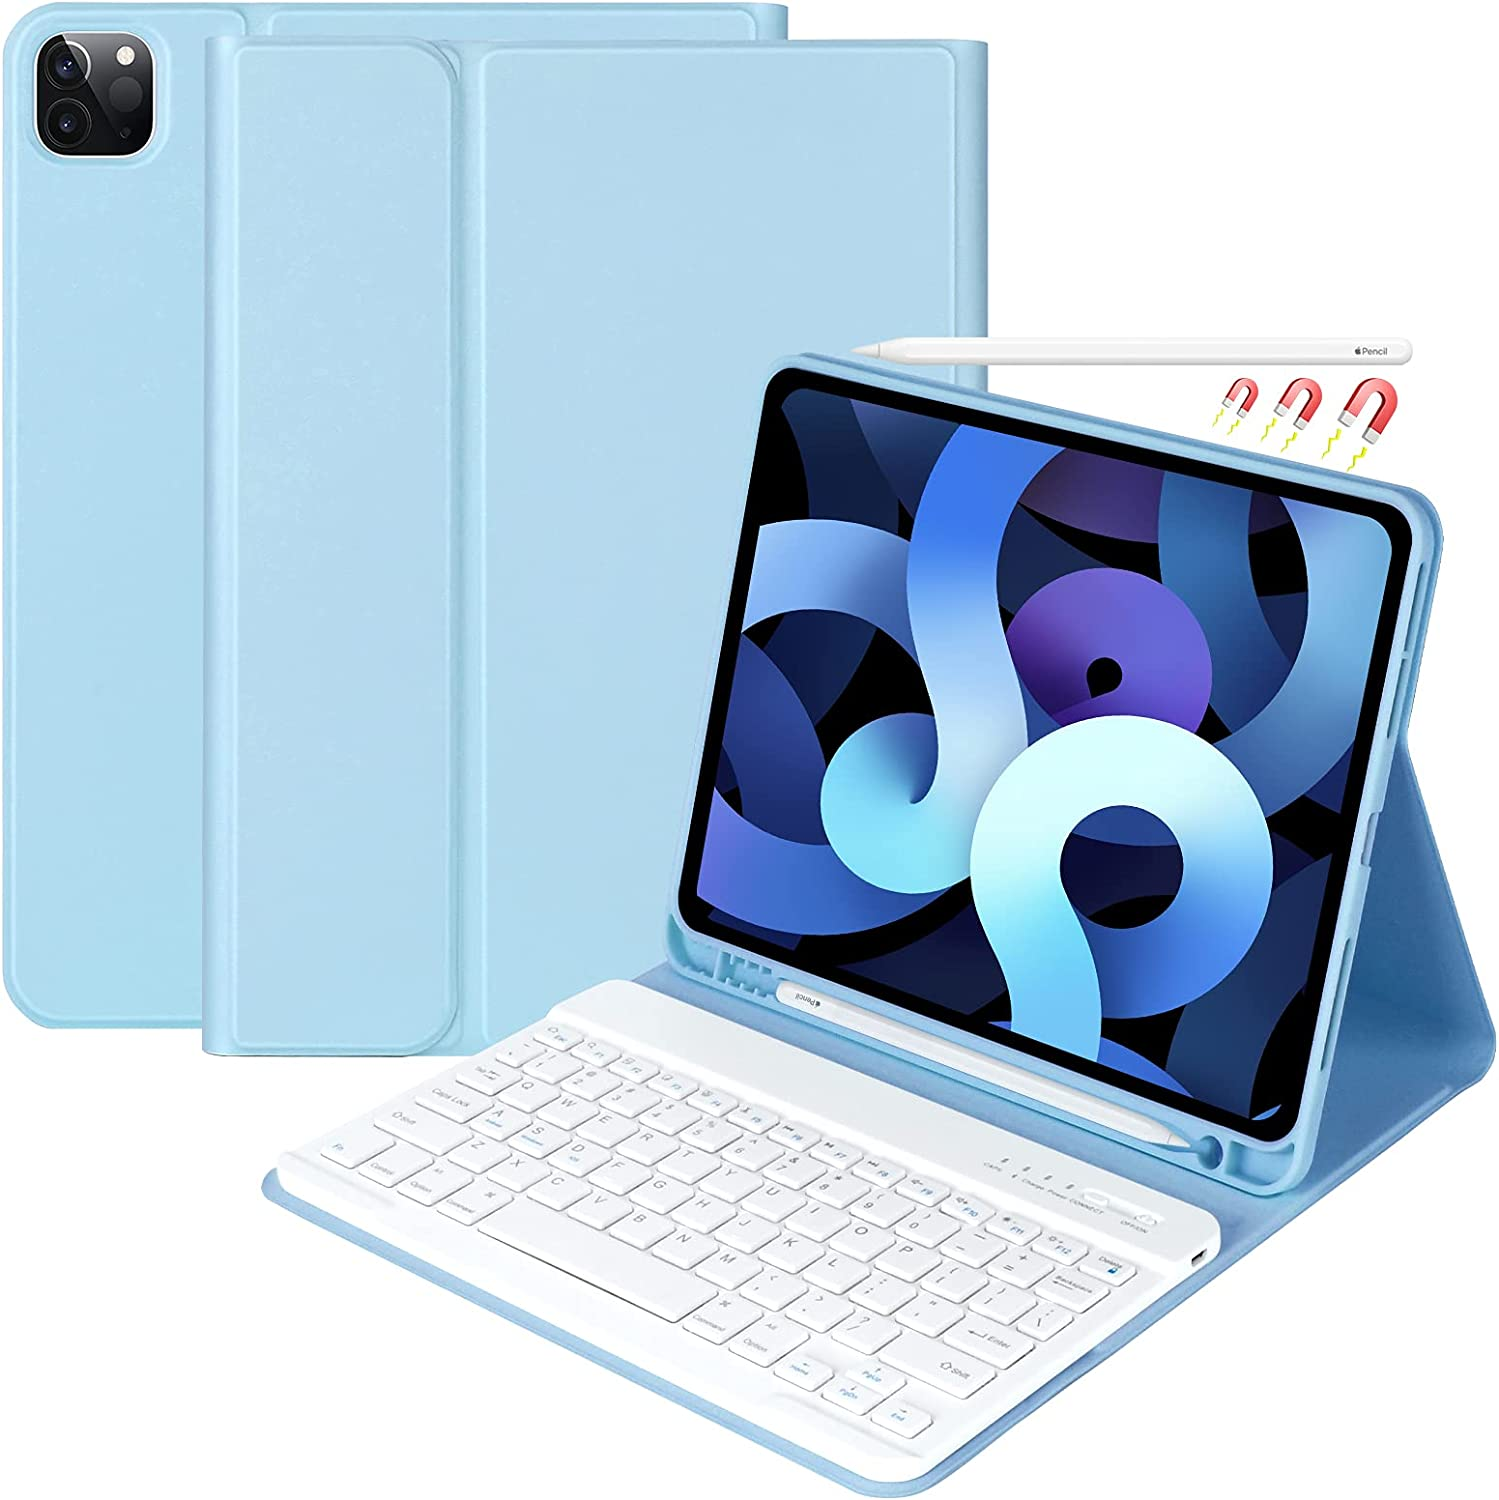 Keyboard Case for iPad Pro 11 inch 3rd Generation 2021 / iPad Pro 11-inch 2020 &2018, iPad Air 4th Gen, Detachable Bluetooth Keyboard with Pencil Holder for iPad 11 inch (1st/2nd/3rd Gen) (Sky Blue)